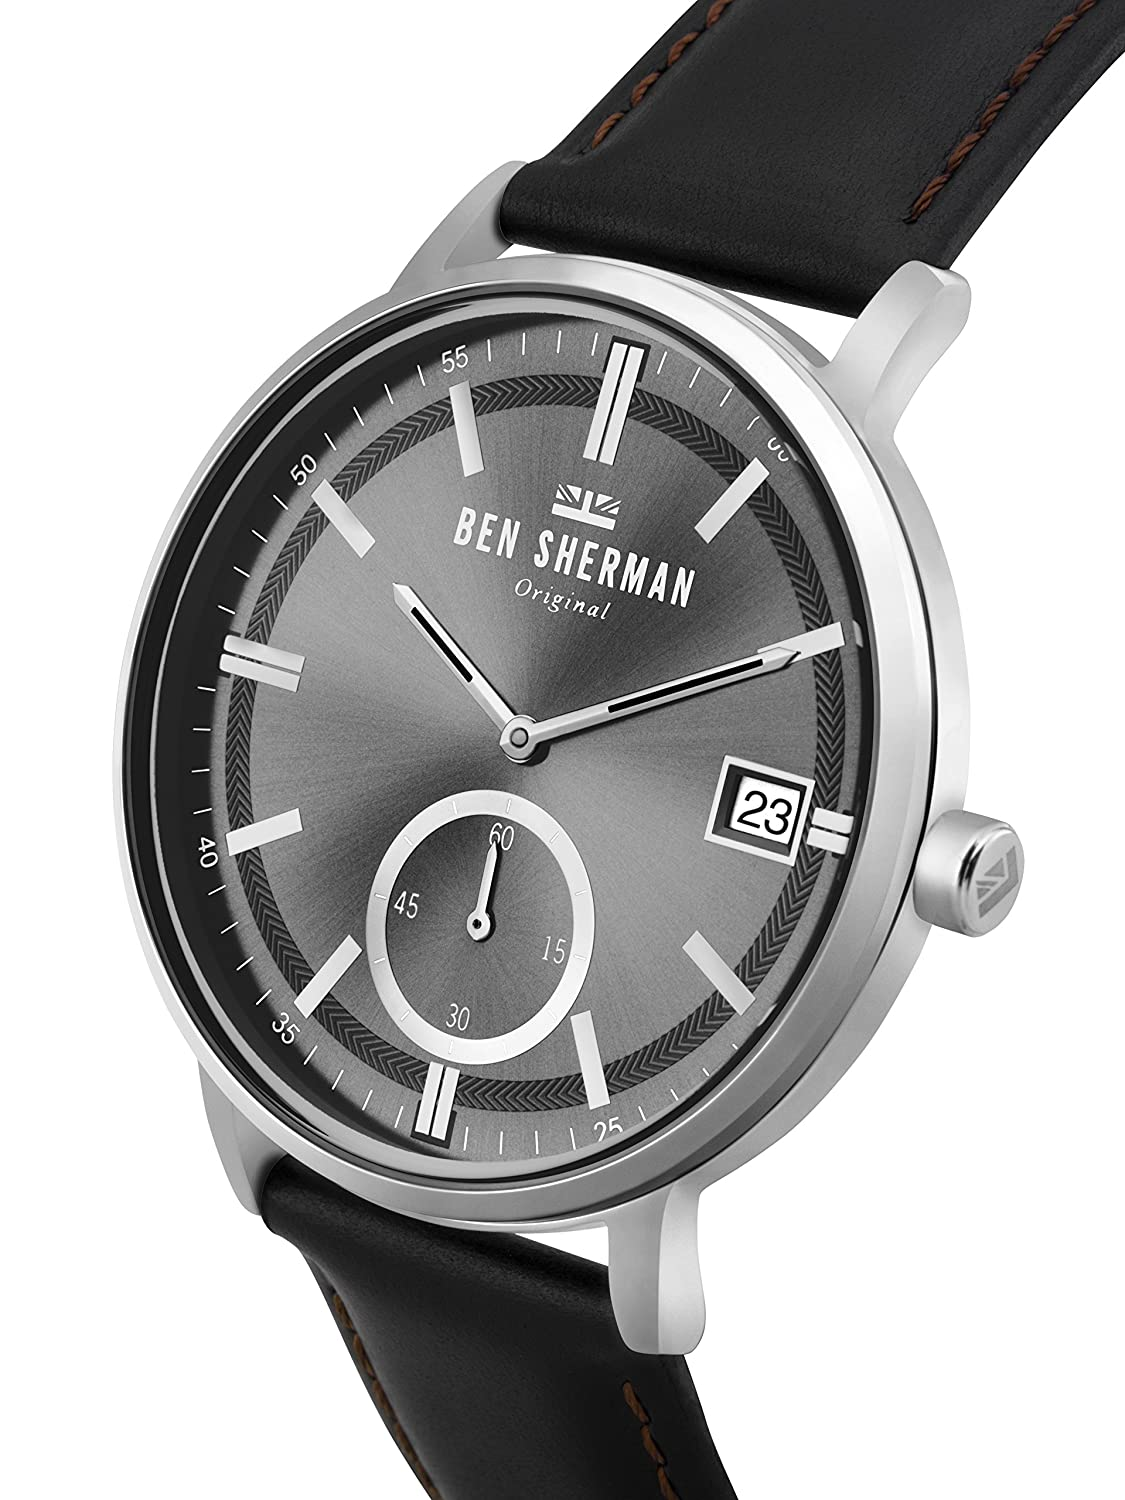 Amazon.com  Ben Sherman Men s Portobello Professional Quartz Watch with  Leather Strap cca172c39d0